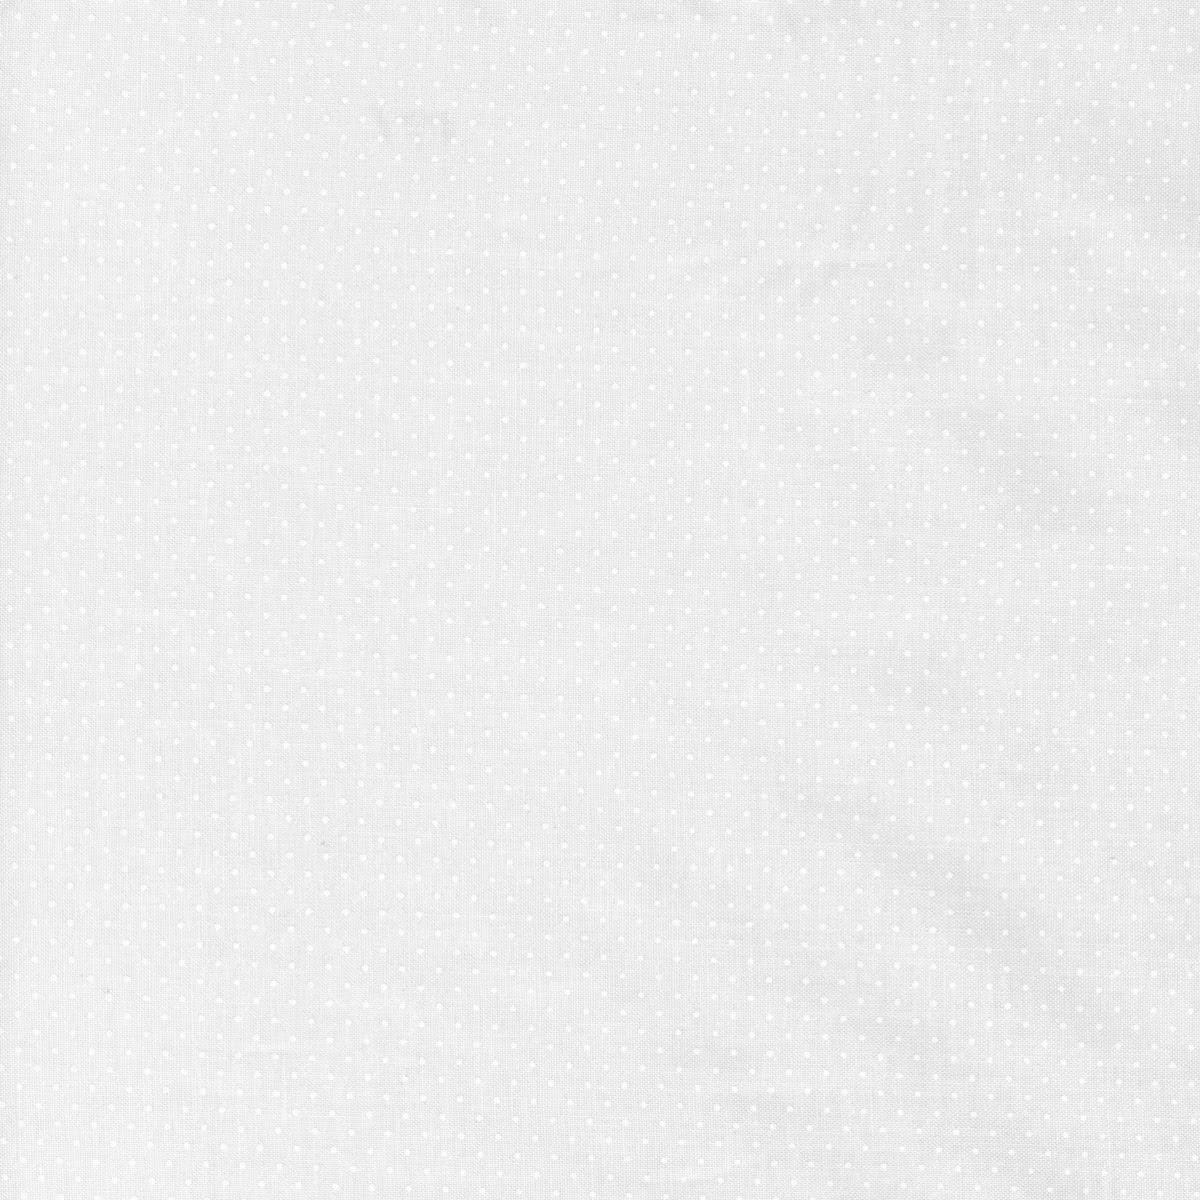 Solid-ish Tone on Tone cotton quilt fabric BTY Timeless Treasure SANDSTONE white